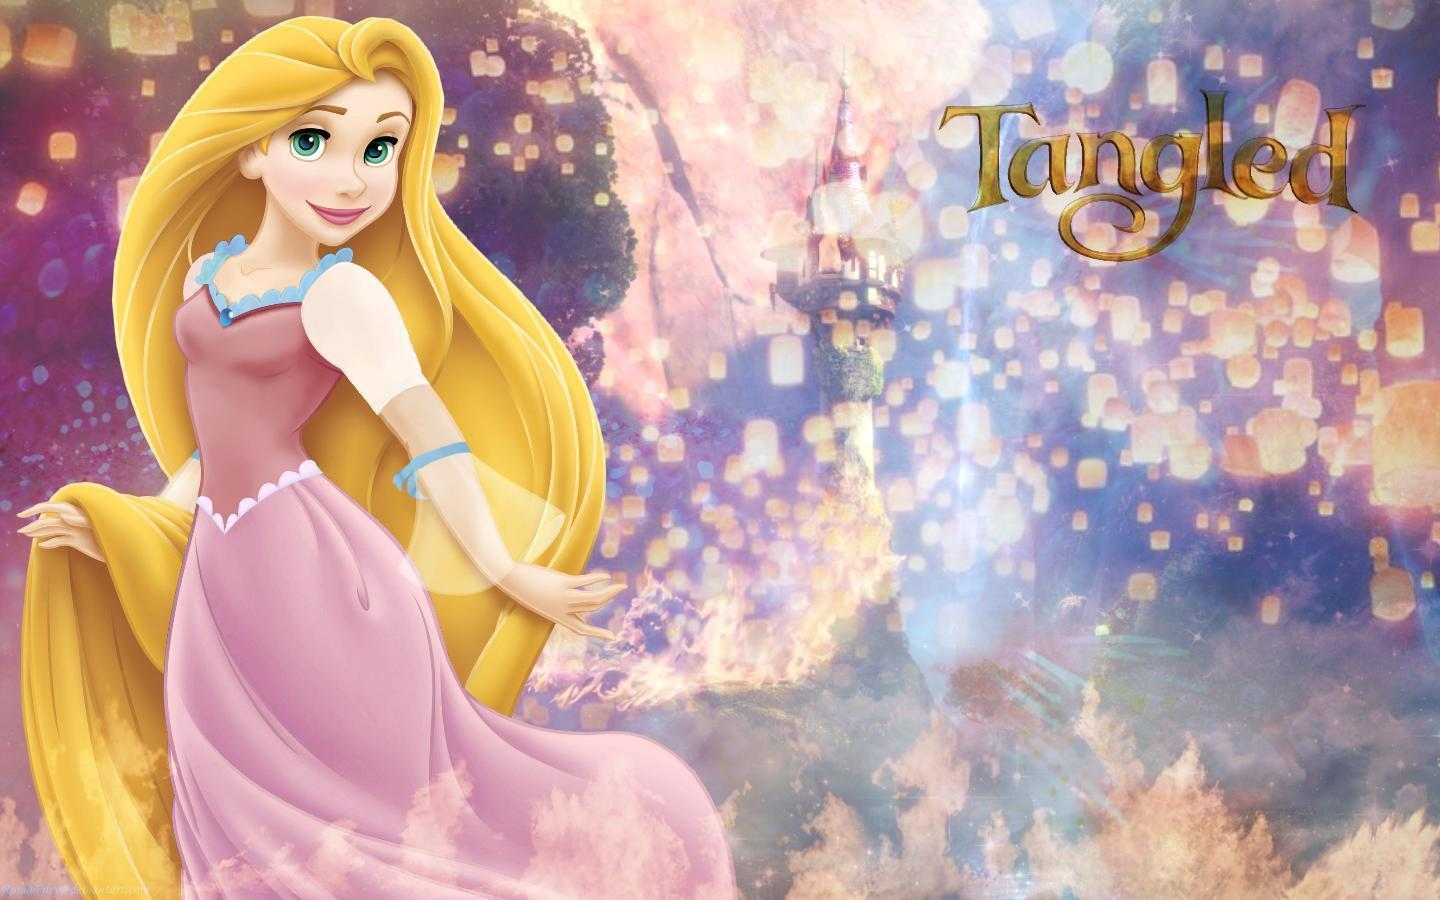 Rapunzel Wallpapers 1440x900